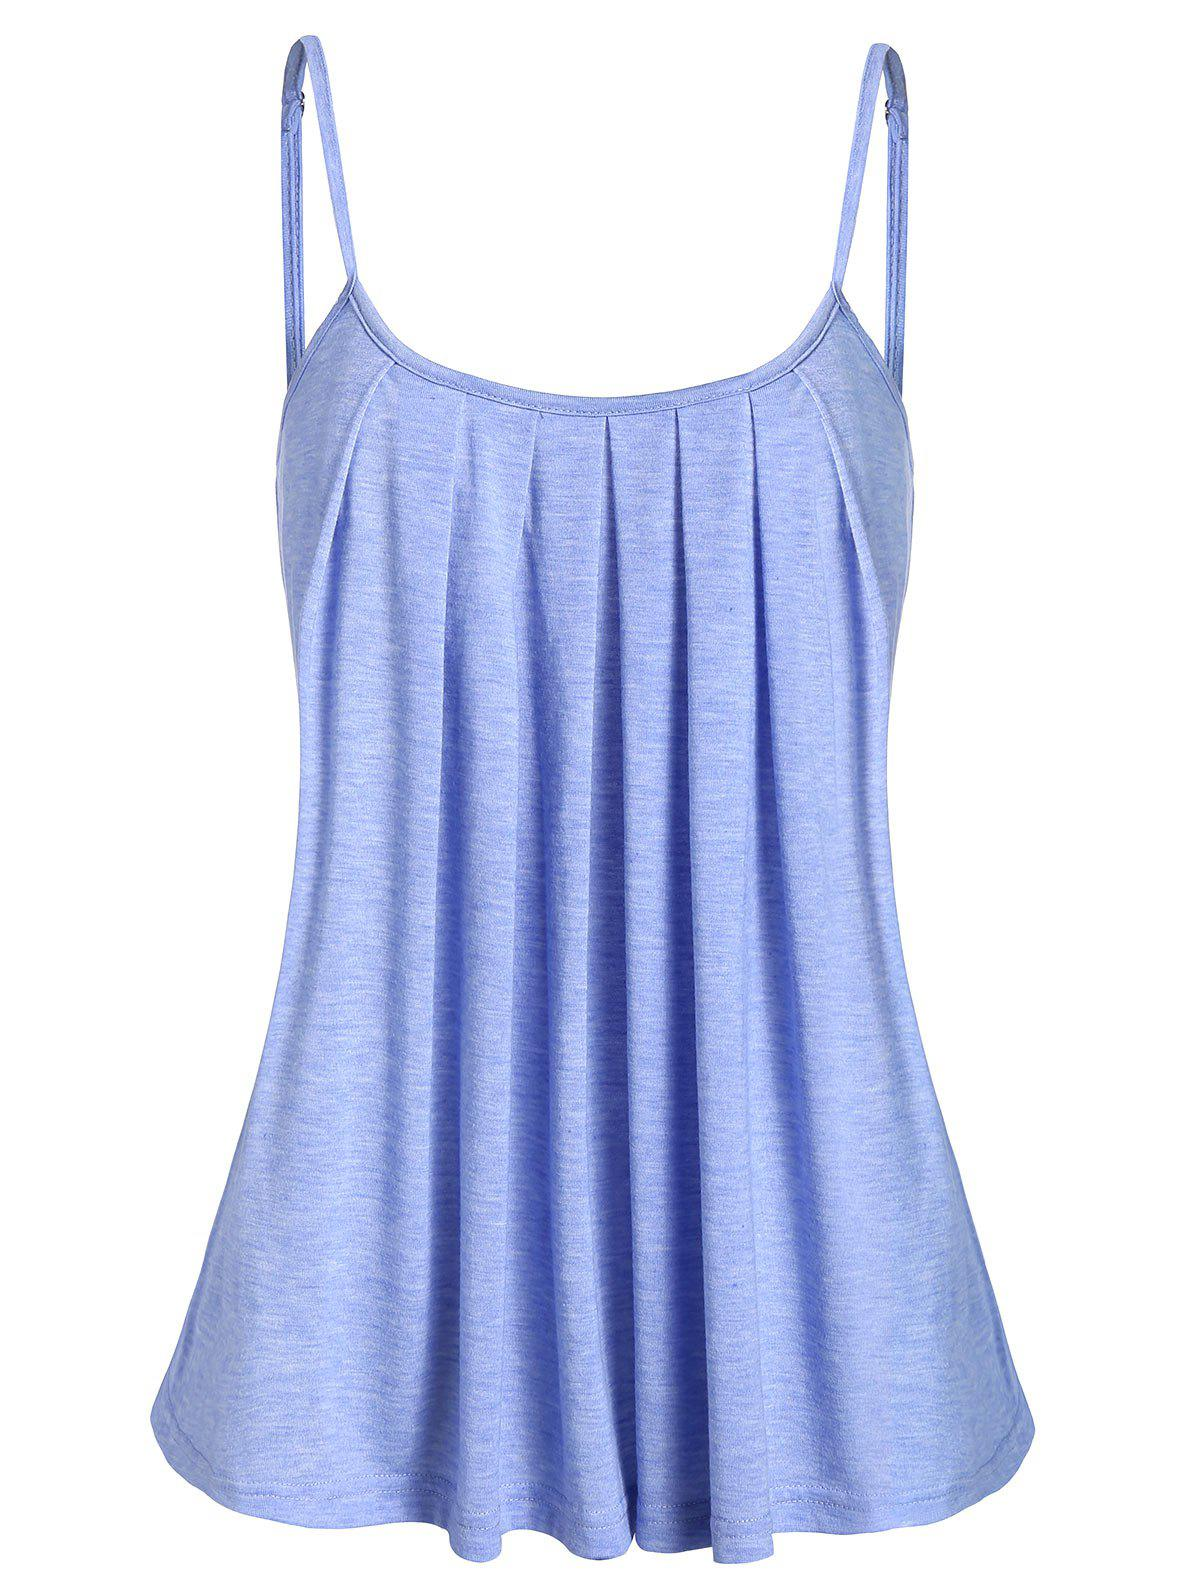 Unique Spaghetti Strap Marled Pleated Tank Top